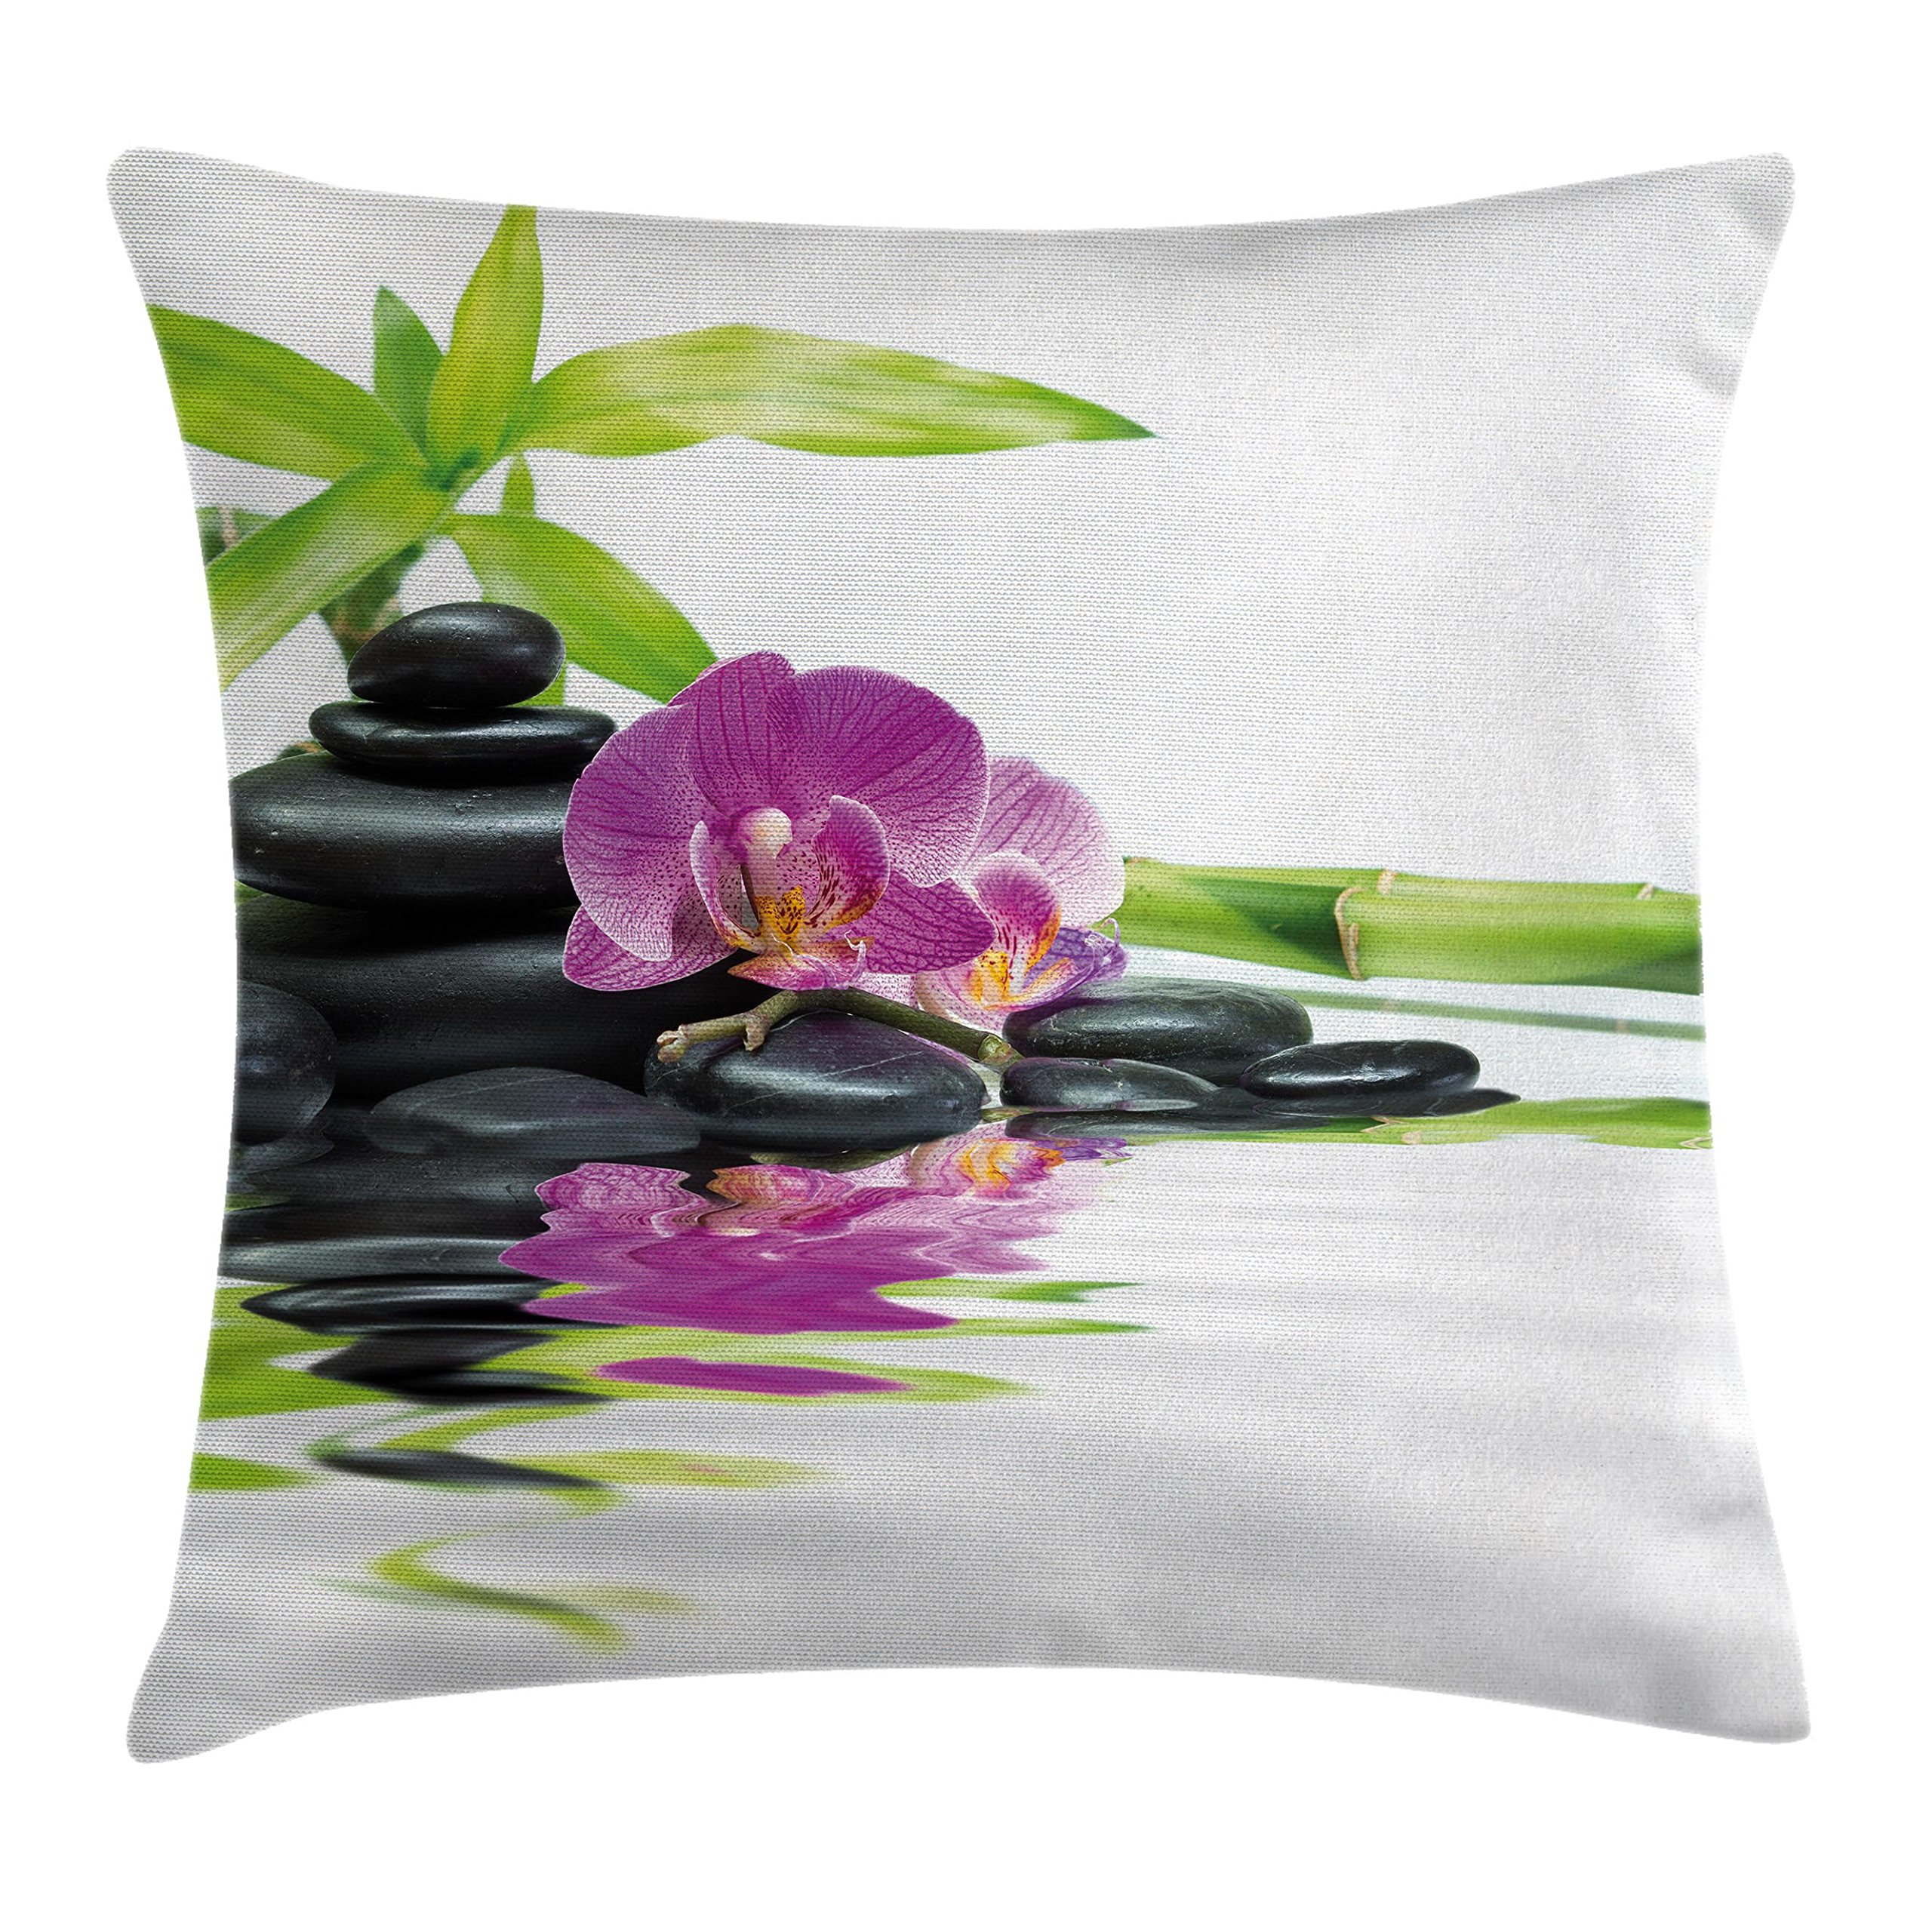 Ambesonne Spa Decor Throw Pillow Cushion Cover, Asian Relaxation with Zen Massage Stones Purple Orchid and a Bamboo, Decorative Square Accent Pillow Case, 16 X 16 Inches, Purple Black and Green